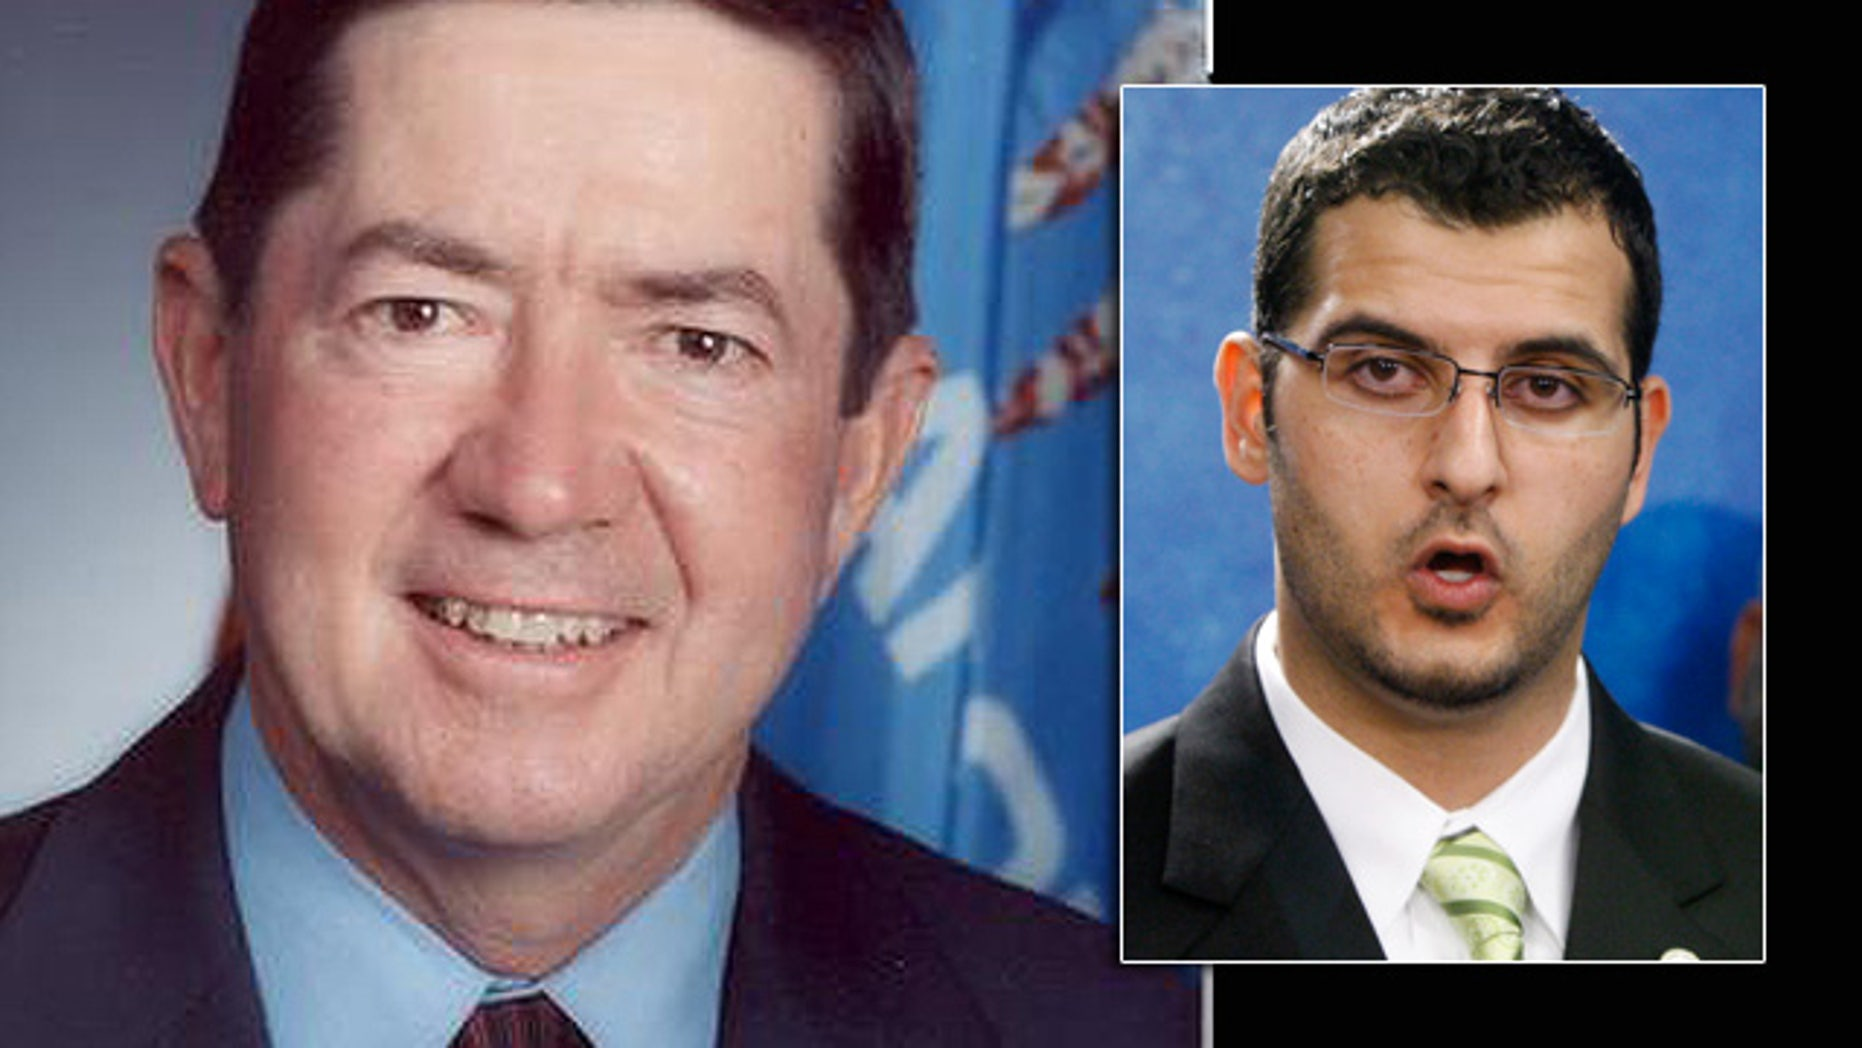 Oklahoma Attorney General Drew Edmondson, left, is accused of failing to respond to a lawsuit filed by Muslim rights activist Muneer Awad seeking to block the state's voter-approved law banning Islamic law in state courts.